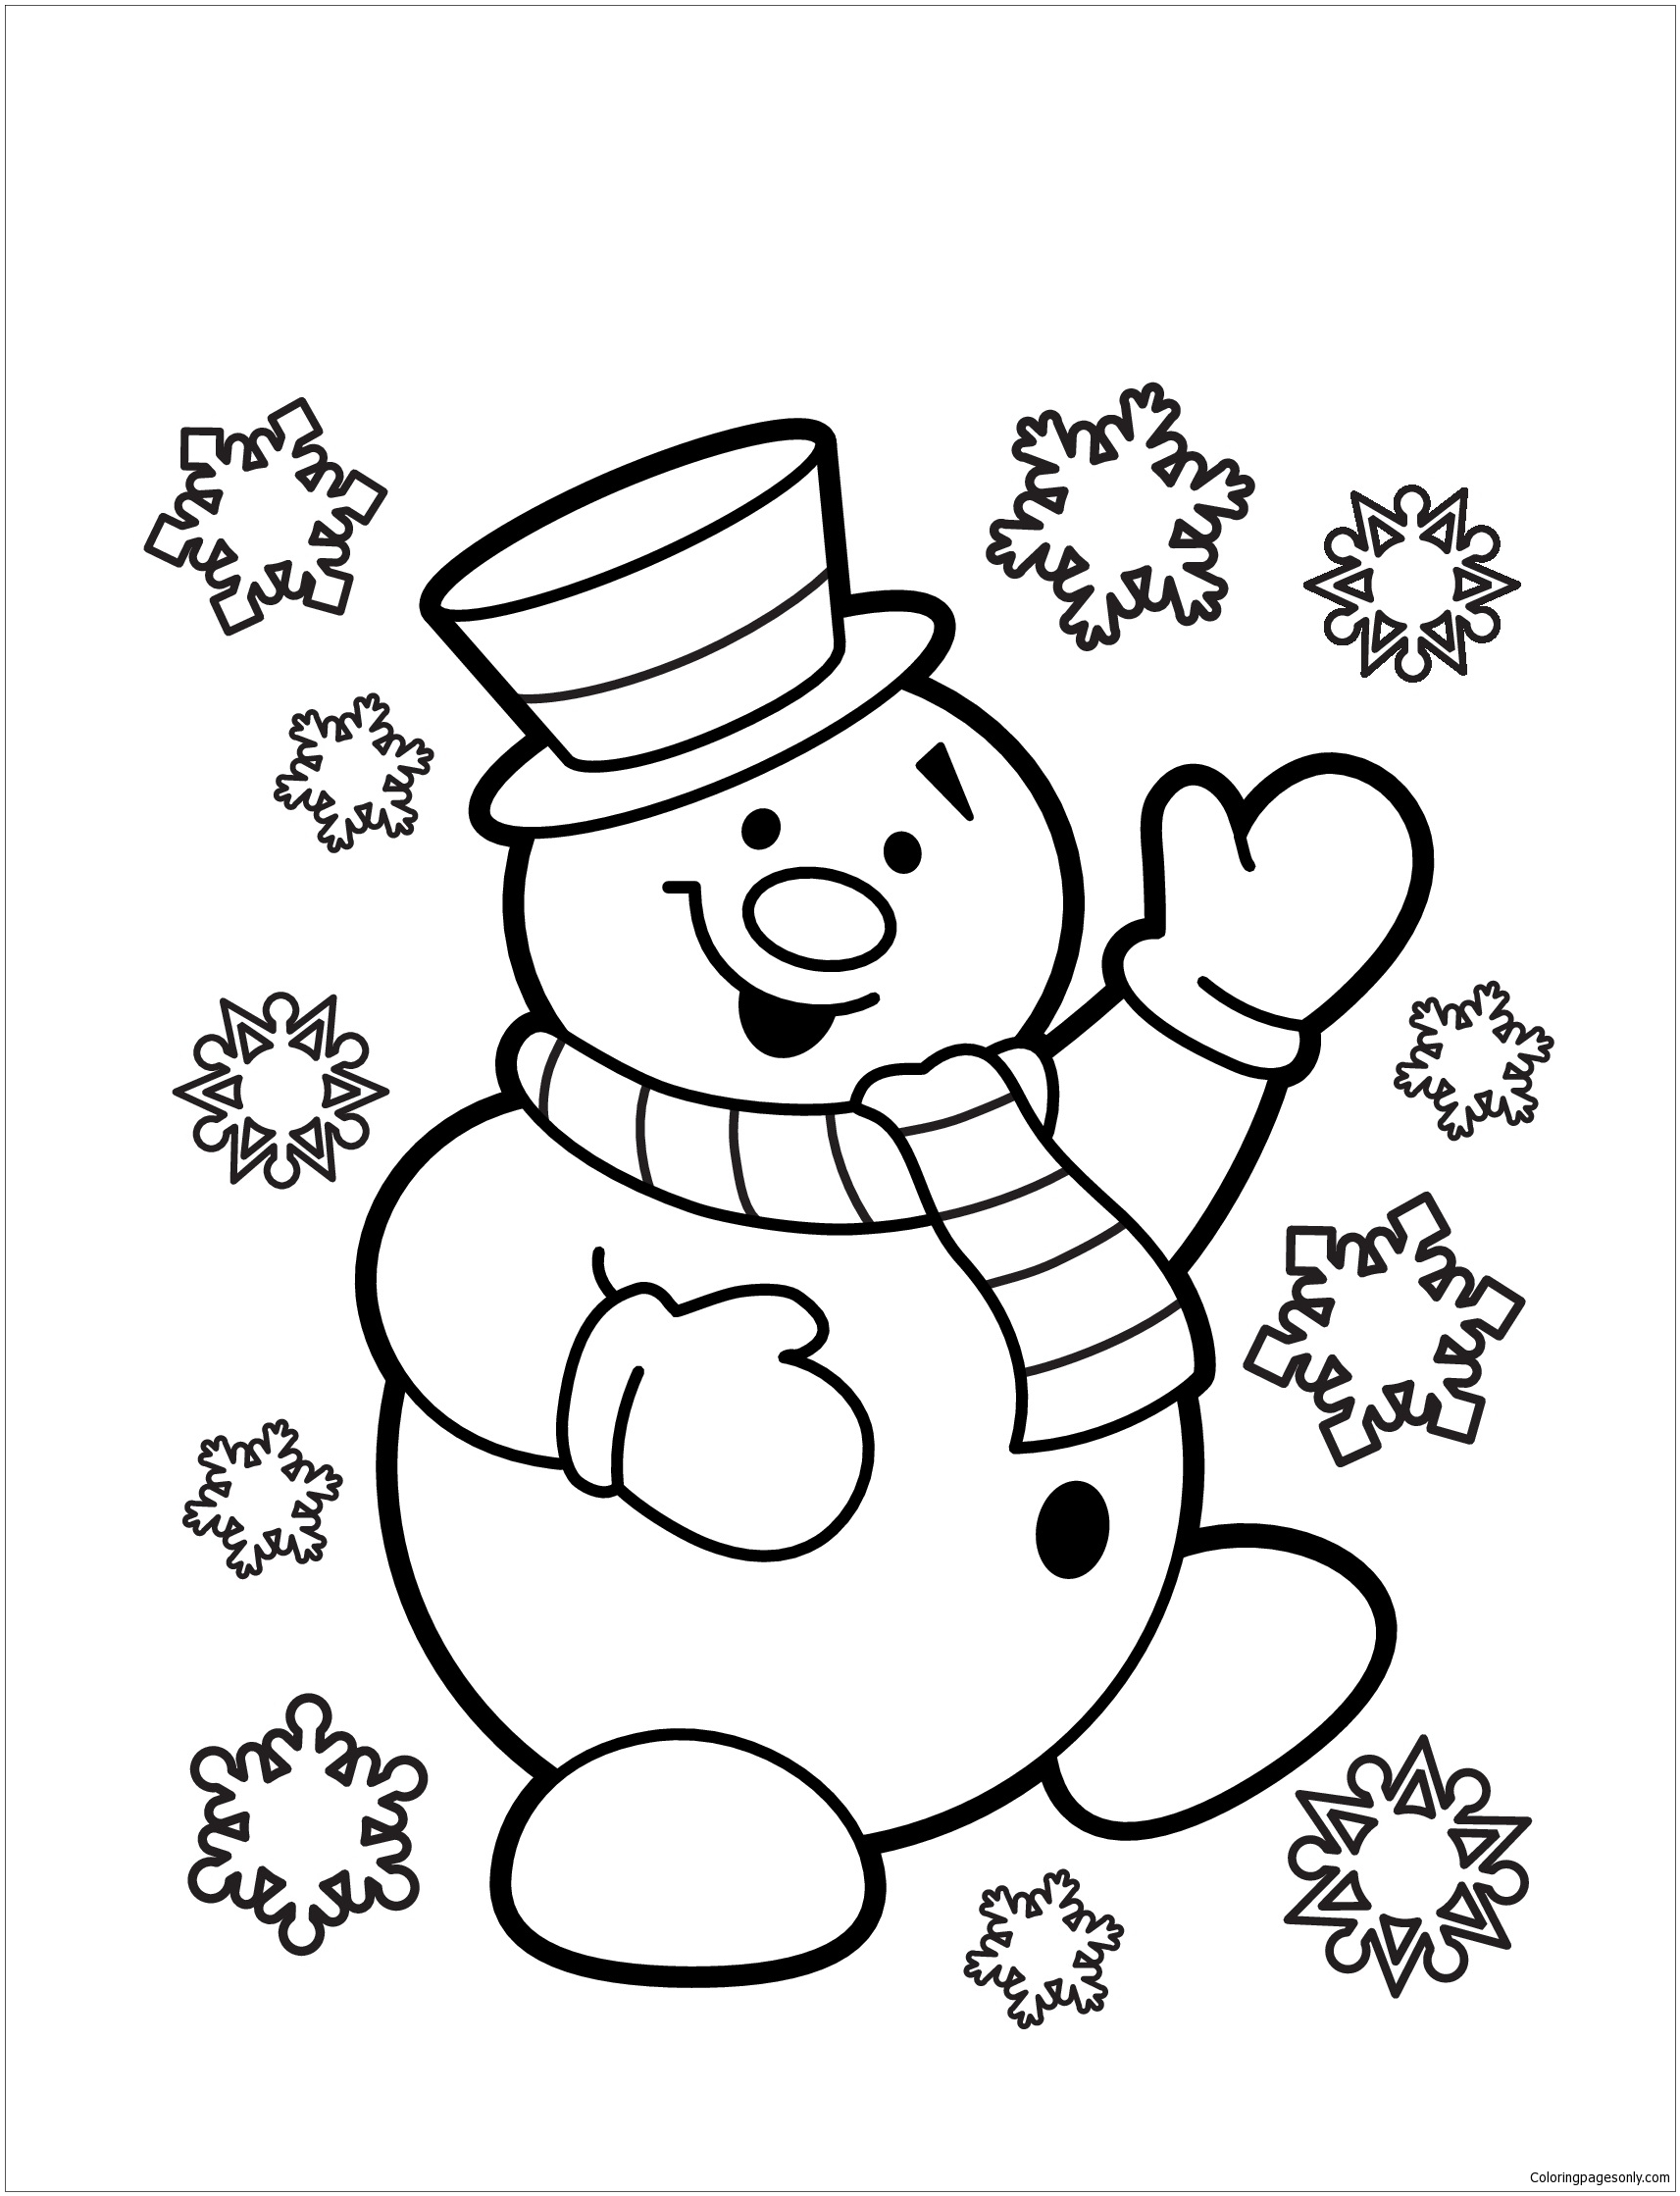 Snowman 3 Coloring Page - Free Coloring Pages Online